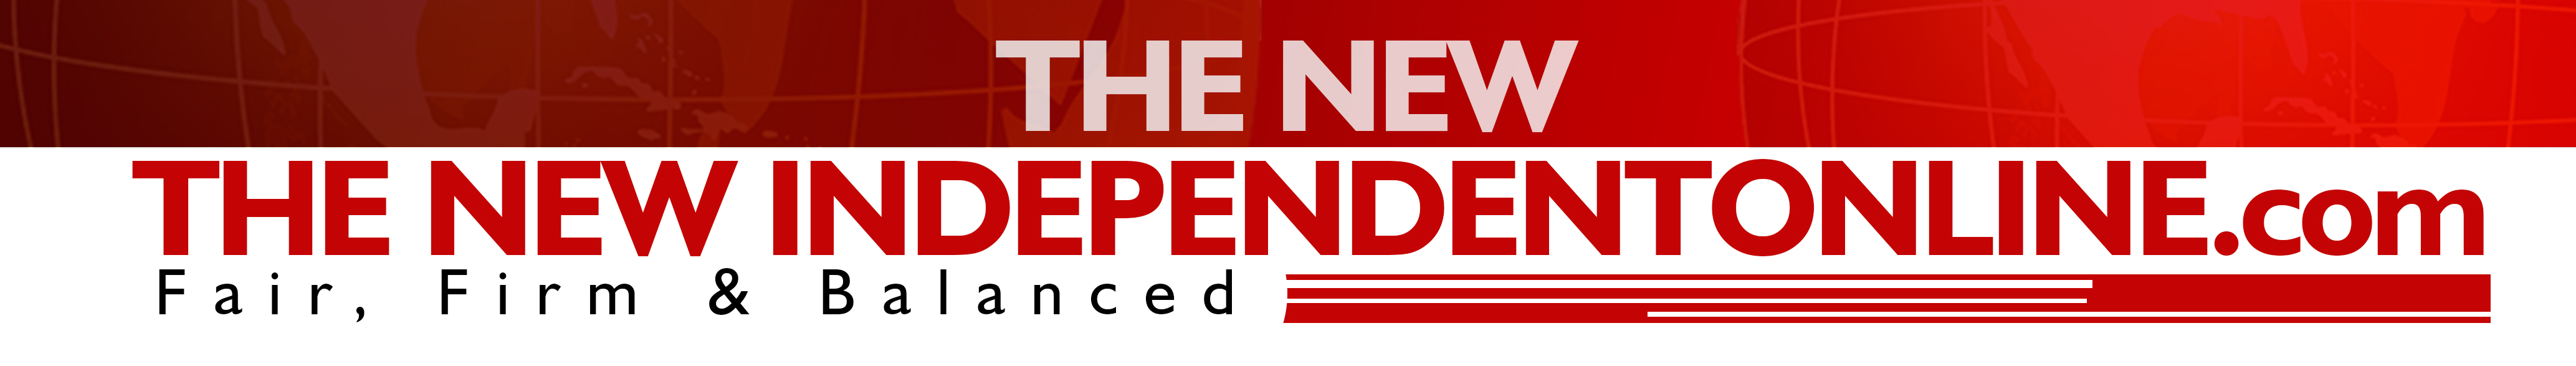 THE NEW INDEPENDENT ONLINE